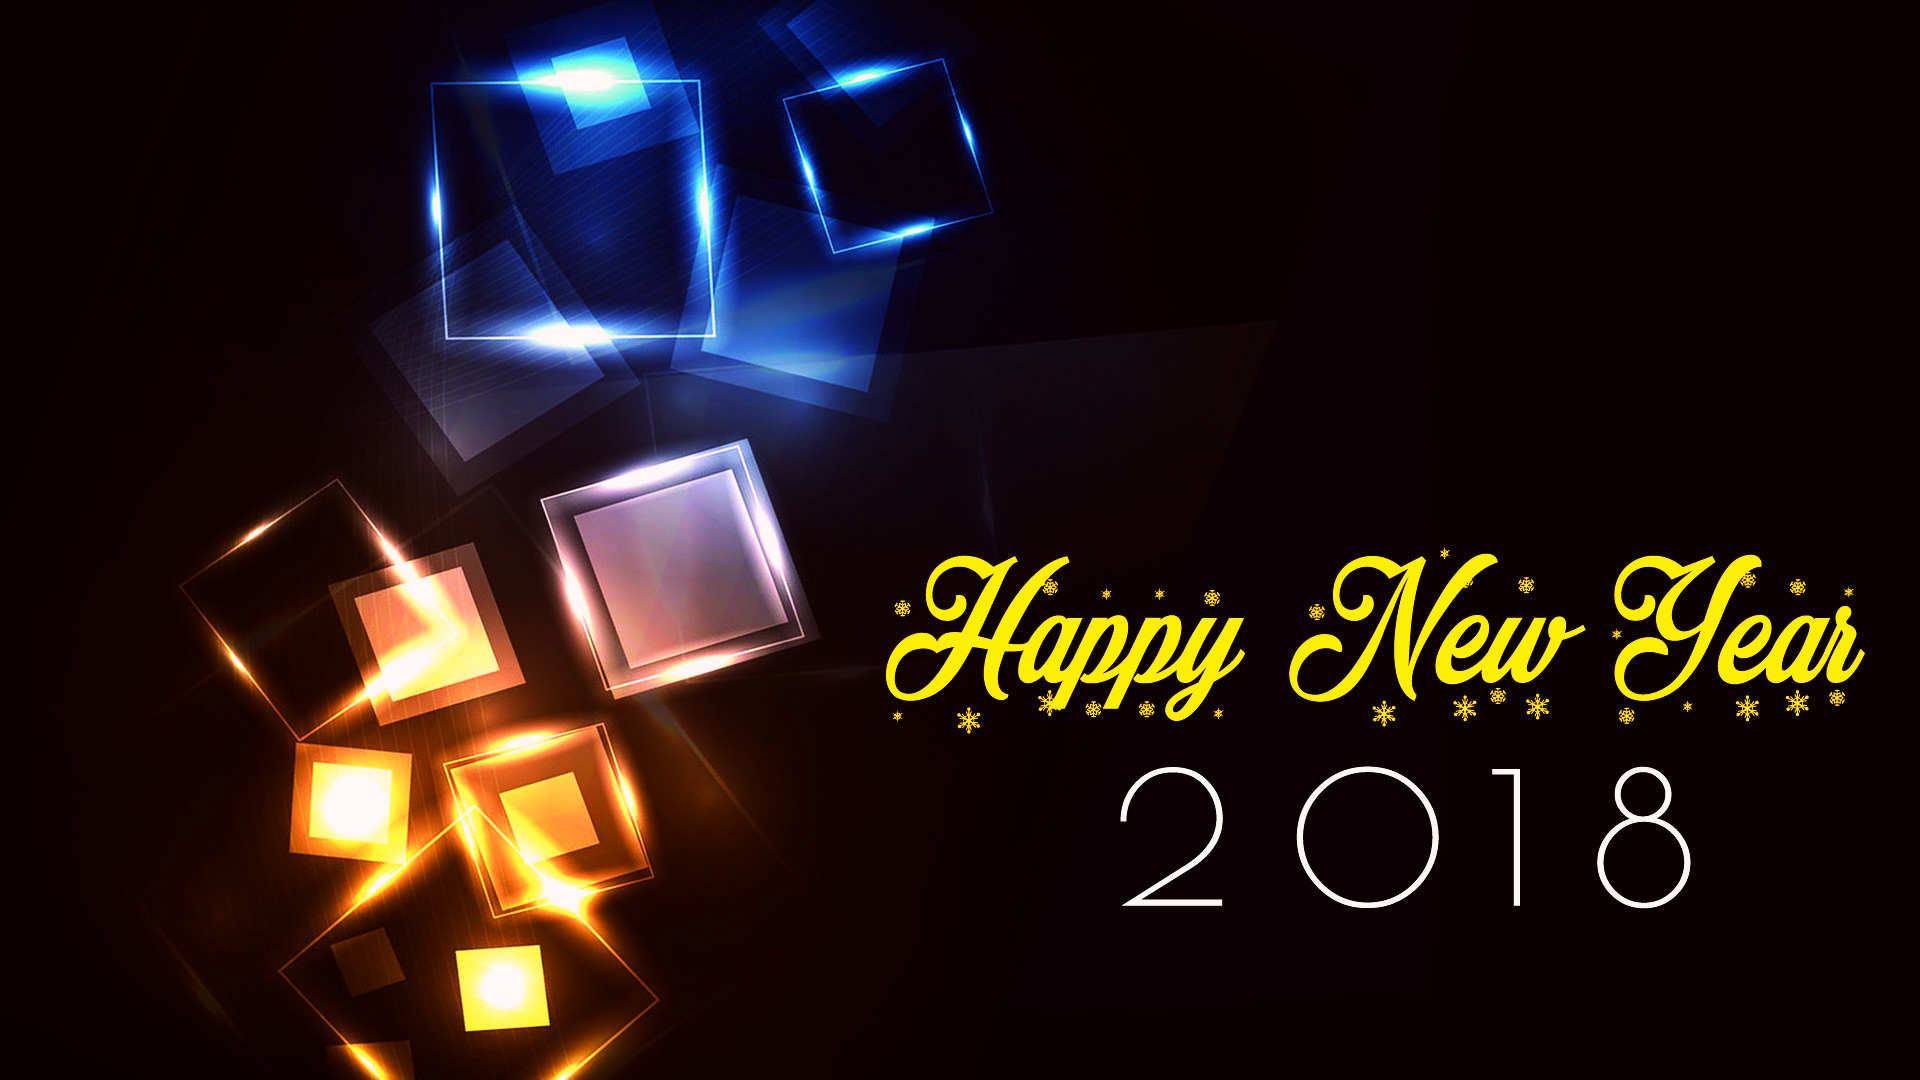 2560x1600 happy new year wishes hd latest cute wallpaper 2018